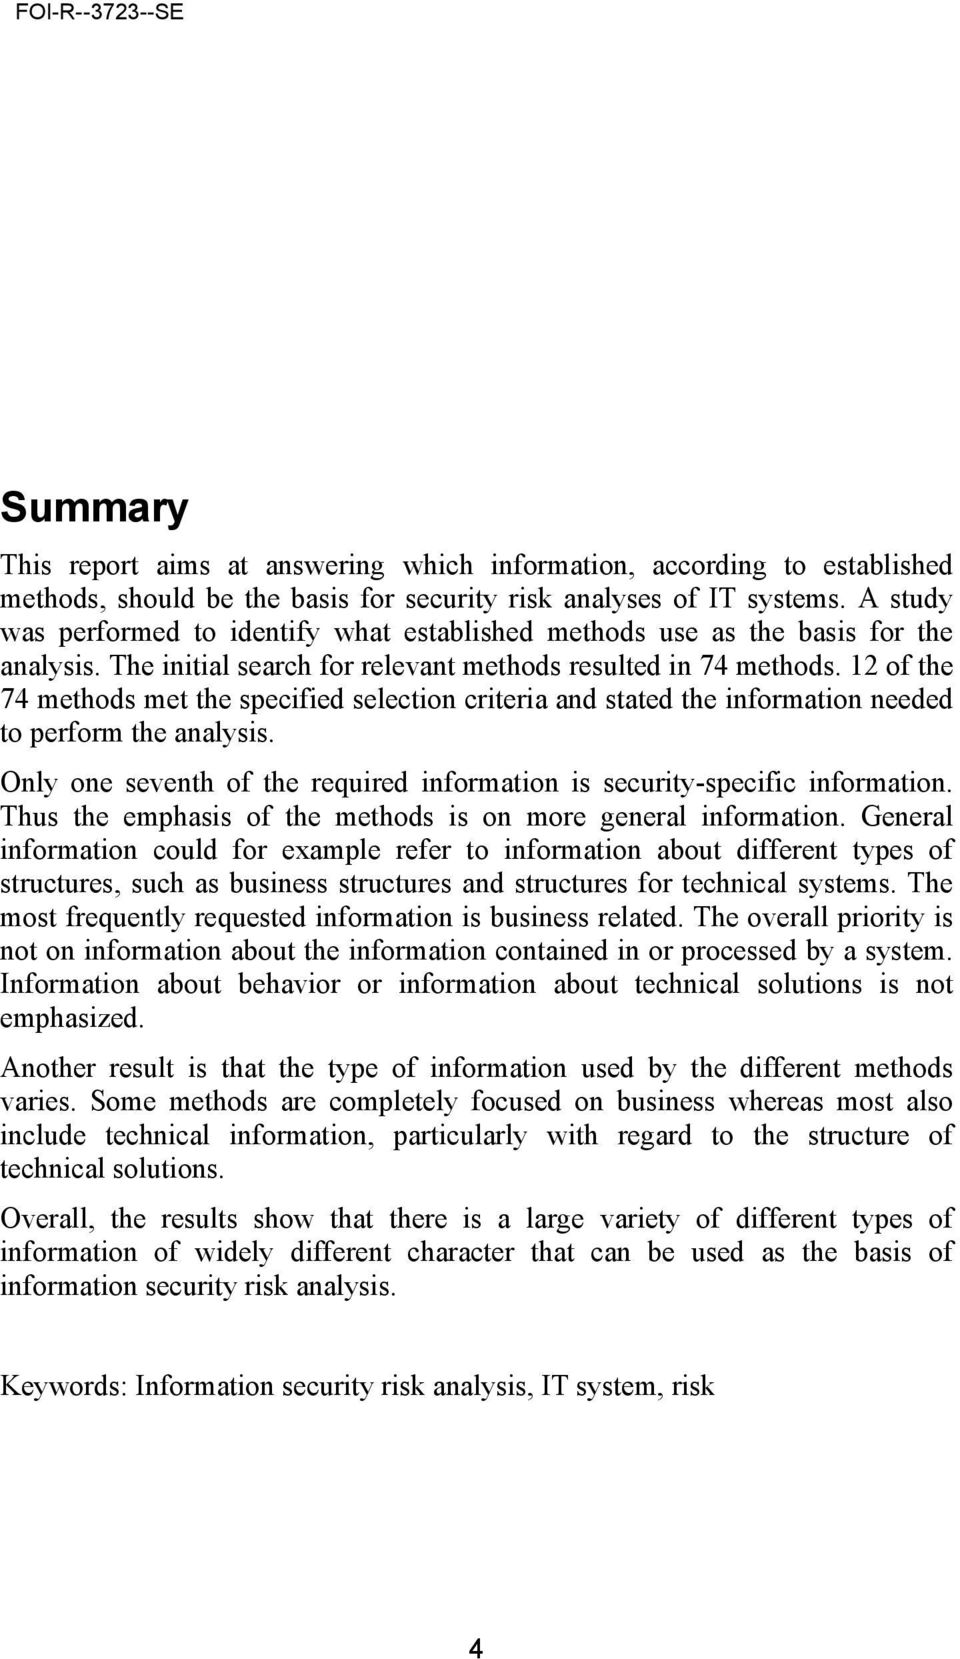 12 of the 74 methods met the specified selection criteria and stated the information needed to perform the analysis. Only one seventh of the required information is security-specific information.